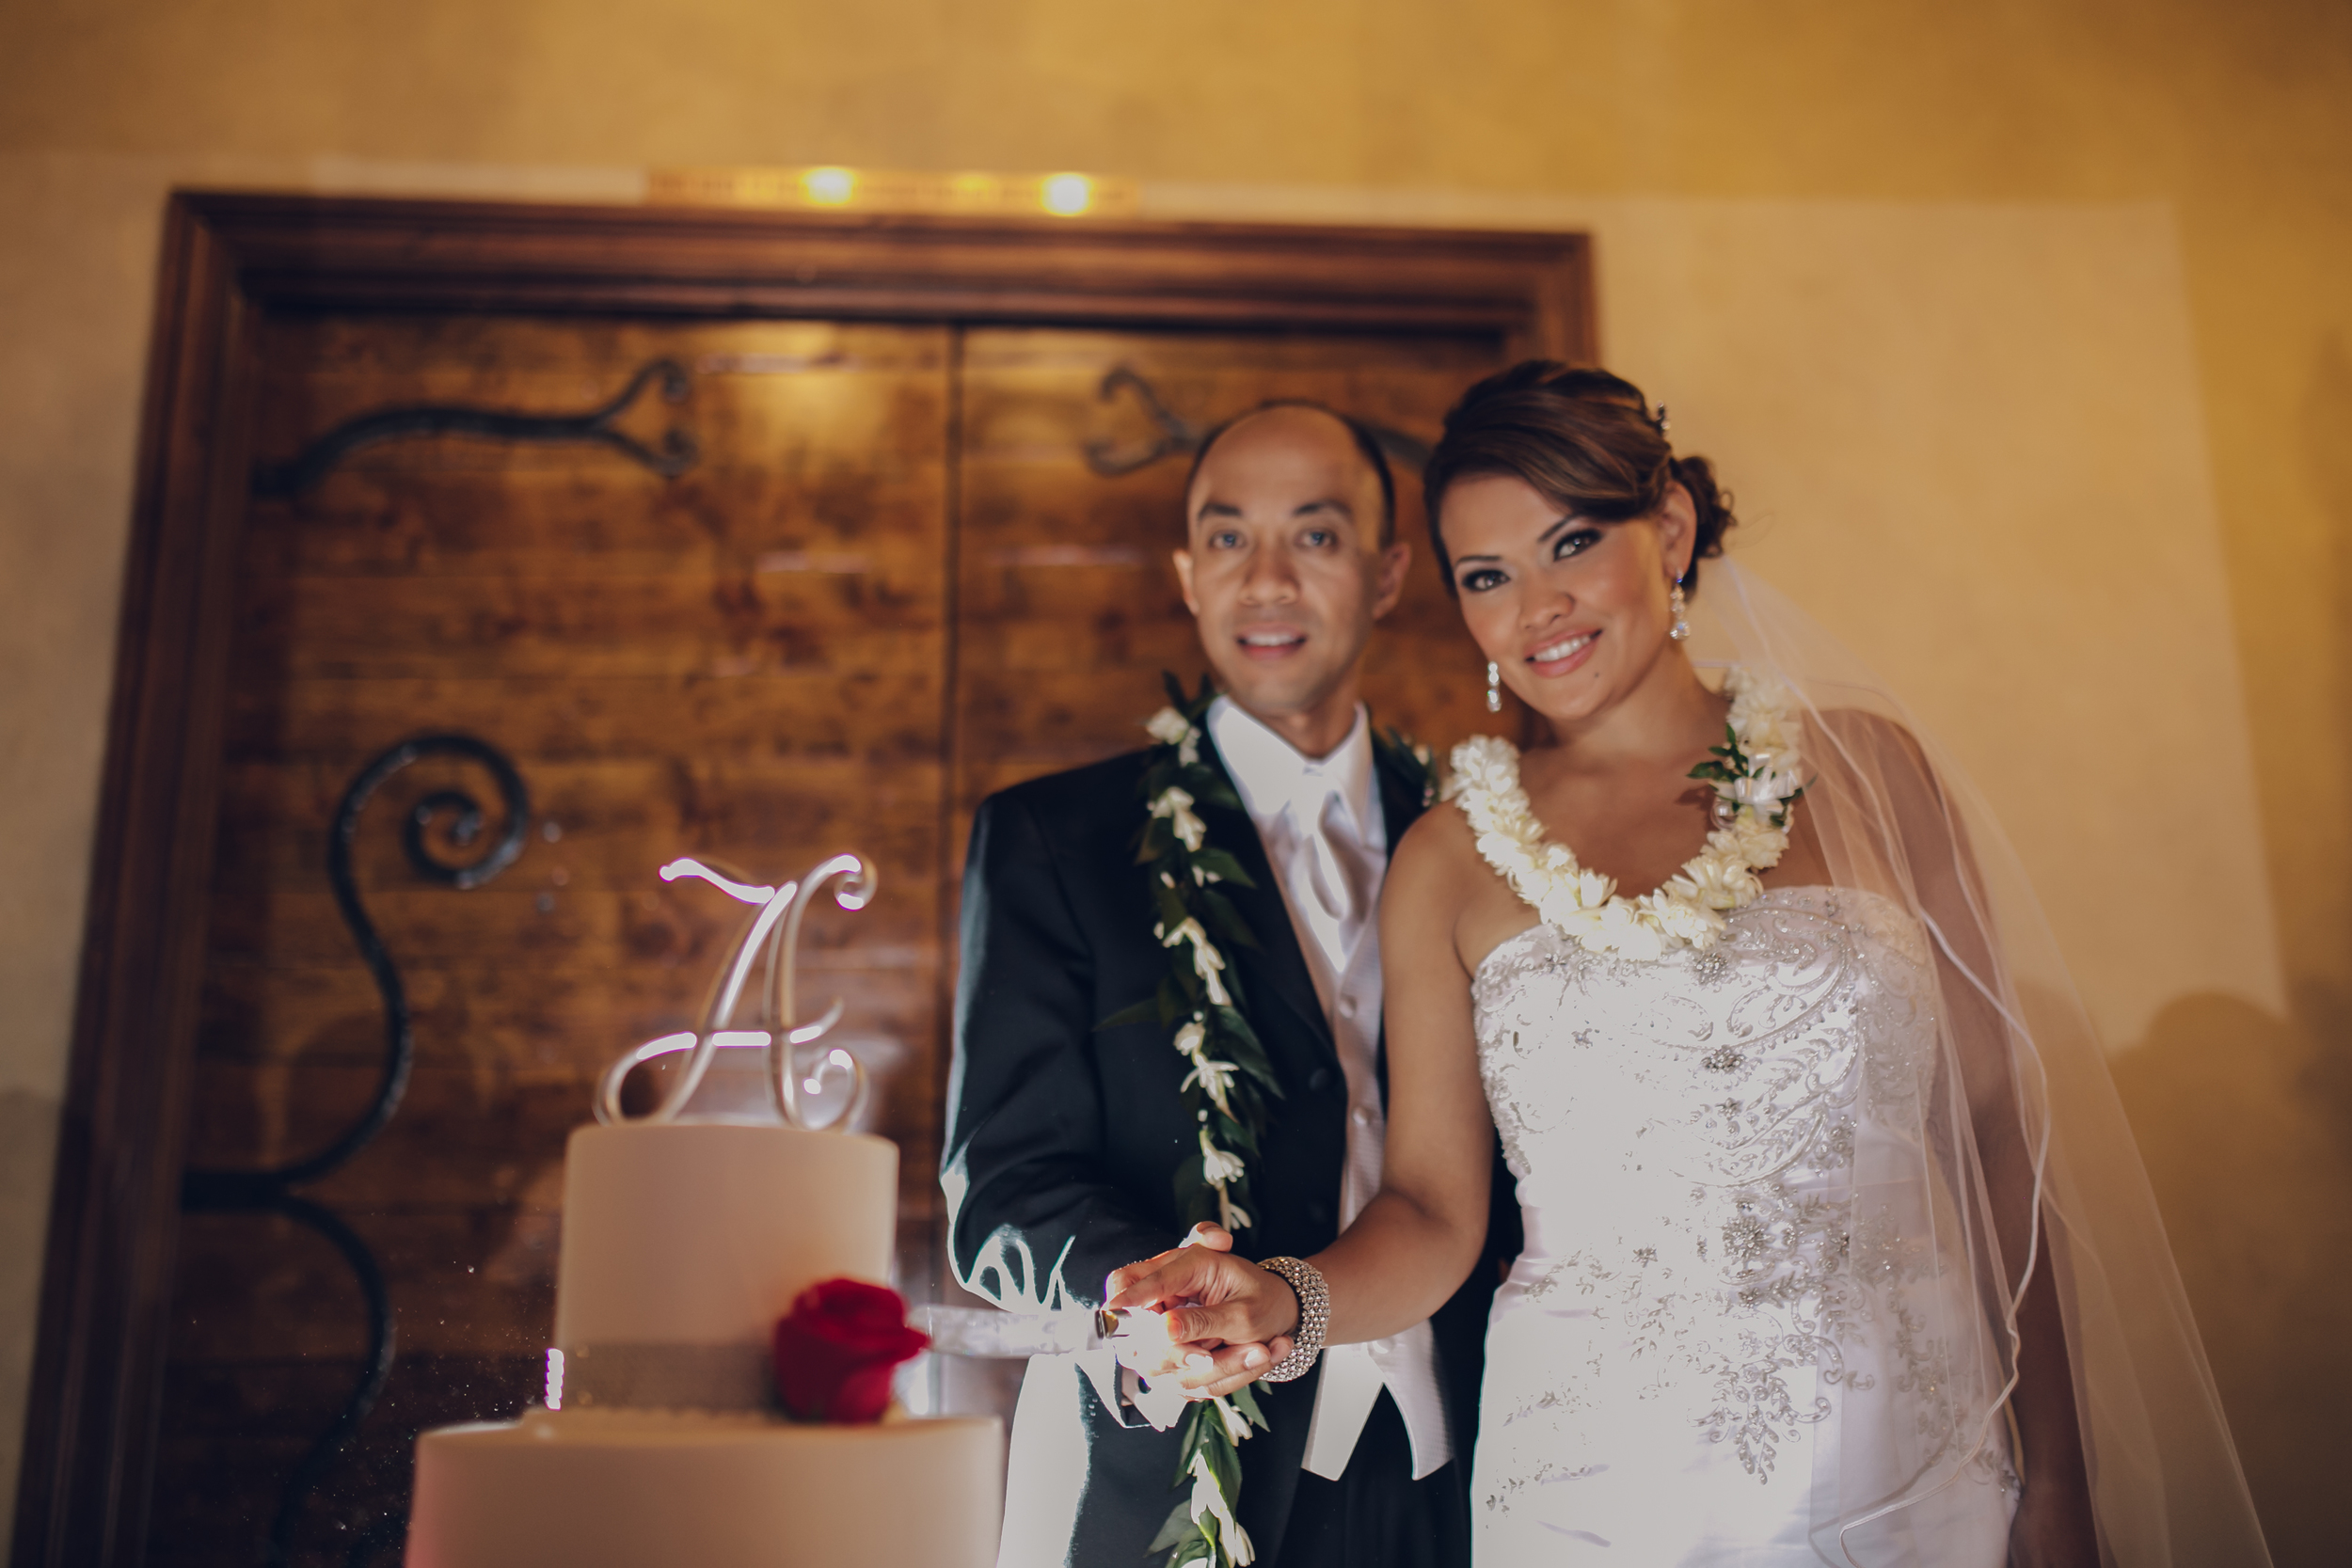 Shiela + Lester's Wedding 9-30-15 1164.jpg